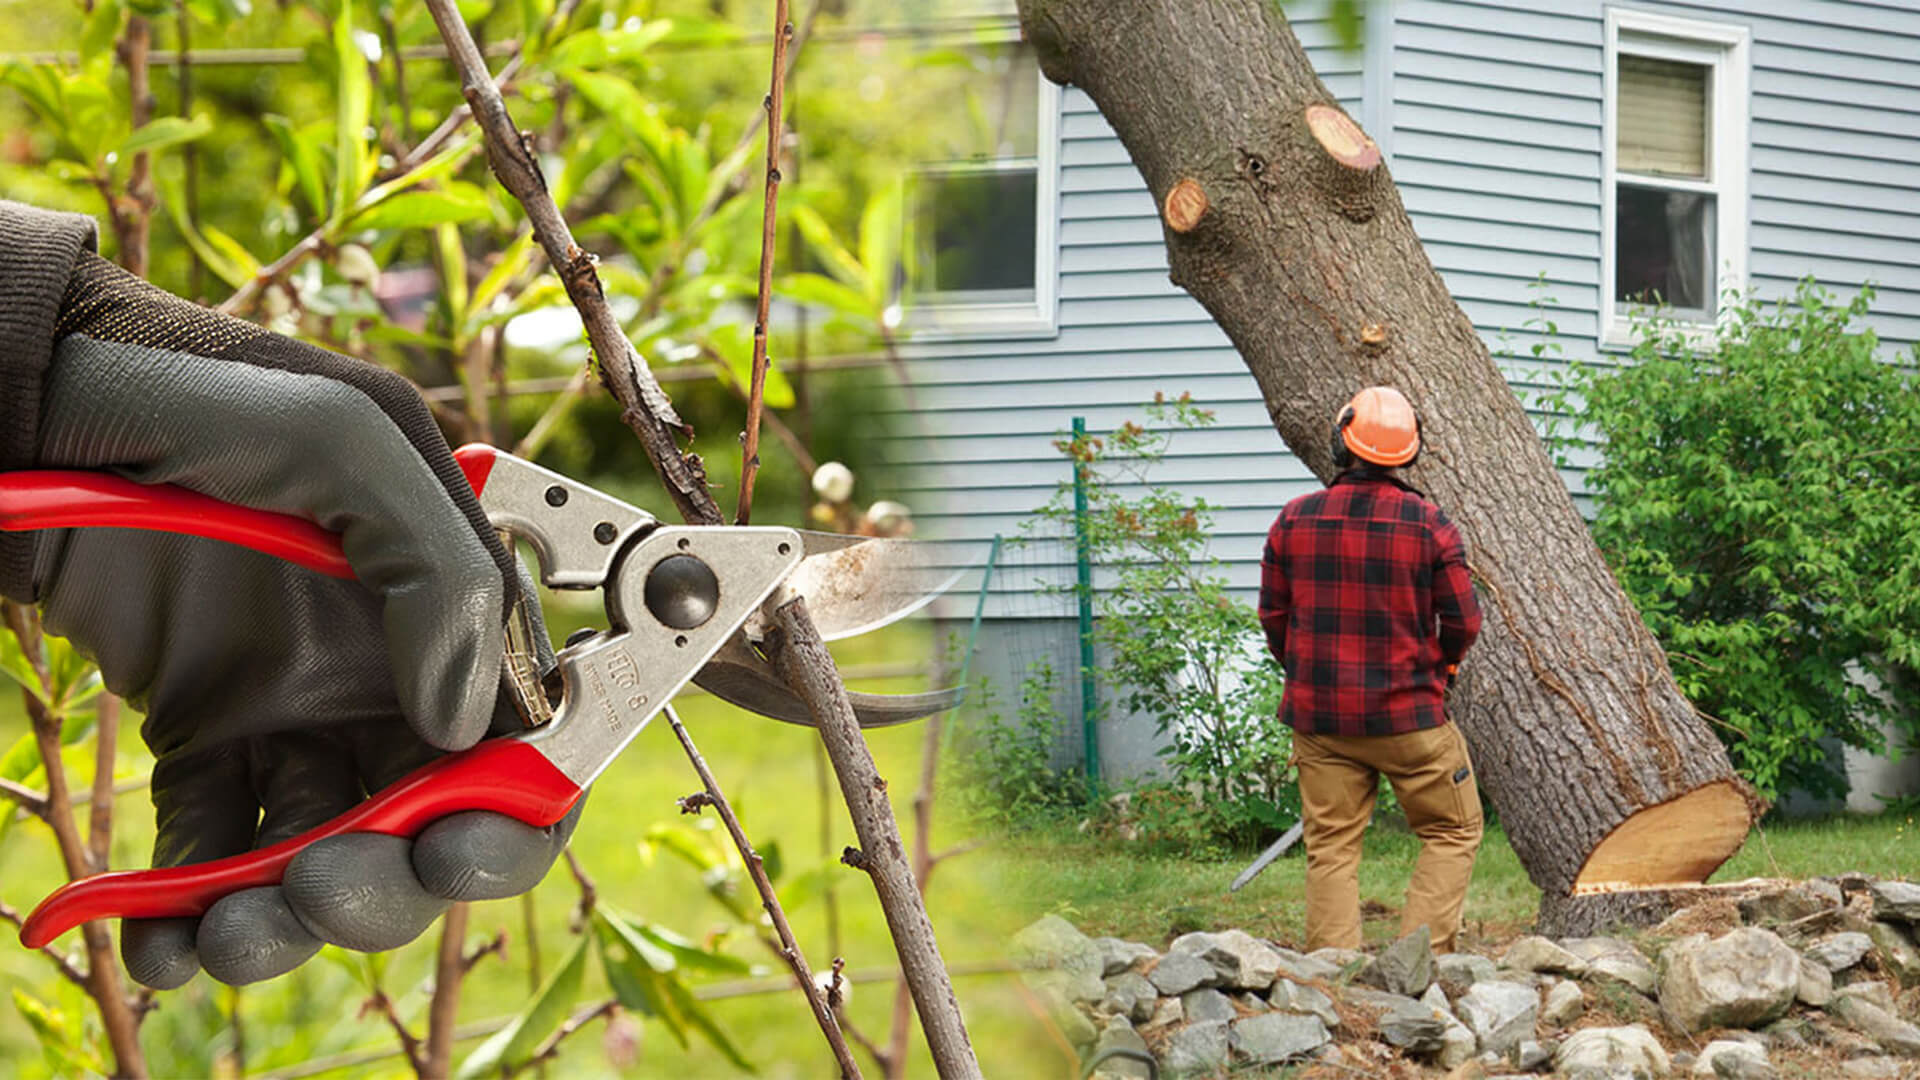 Tree pruning & tree removal-Fort Lauderdale FL Tree Trimming and Stump Grinding Services-We Offer Tree Trimming Services, Tree Removal, Tree Pruning, Tree Cutting, Residential and Commercial Tree Trimming Services, Storm Damage, Emergency Tree Removal, Land Clearing, Tree Companies, Tree Care Service, Stump Grinding, and we're the Best Tree Trimming Company Near You Guaranteed!